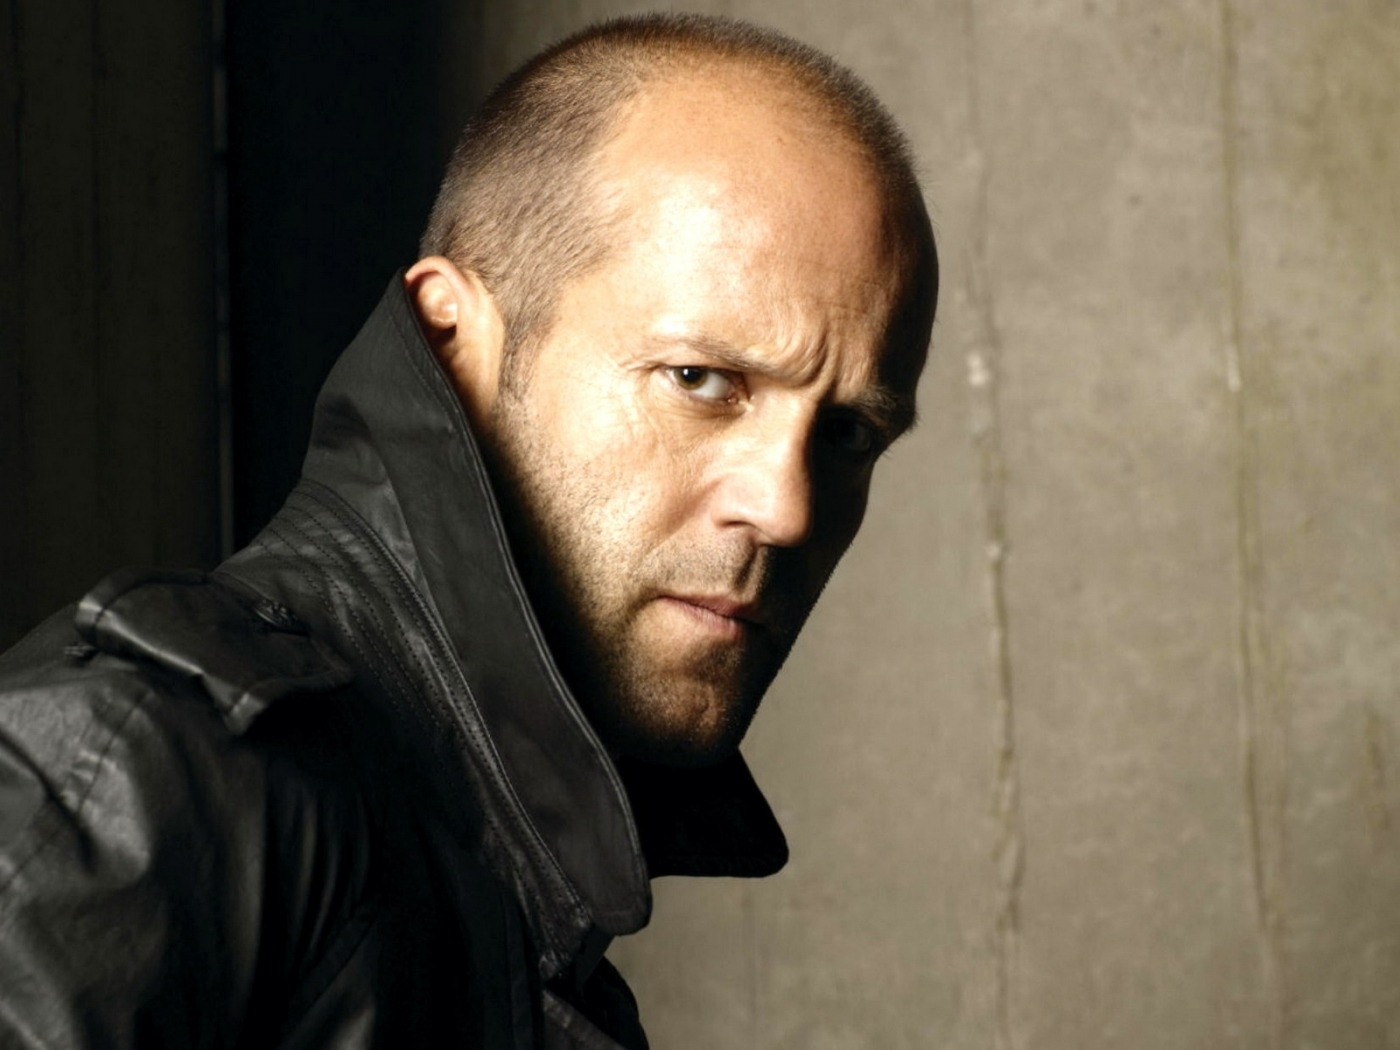 44547 download wallpaper People, Men, Jason Statham screensavers and pictures for free